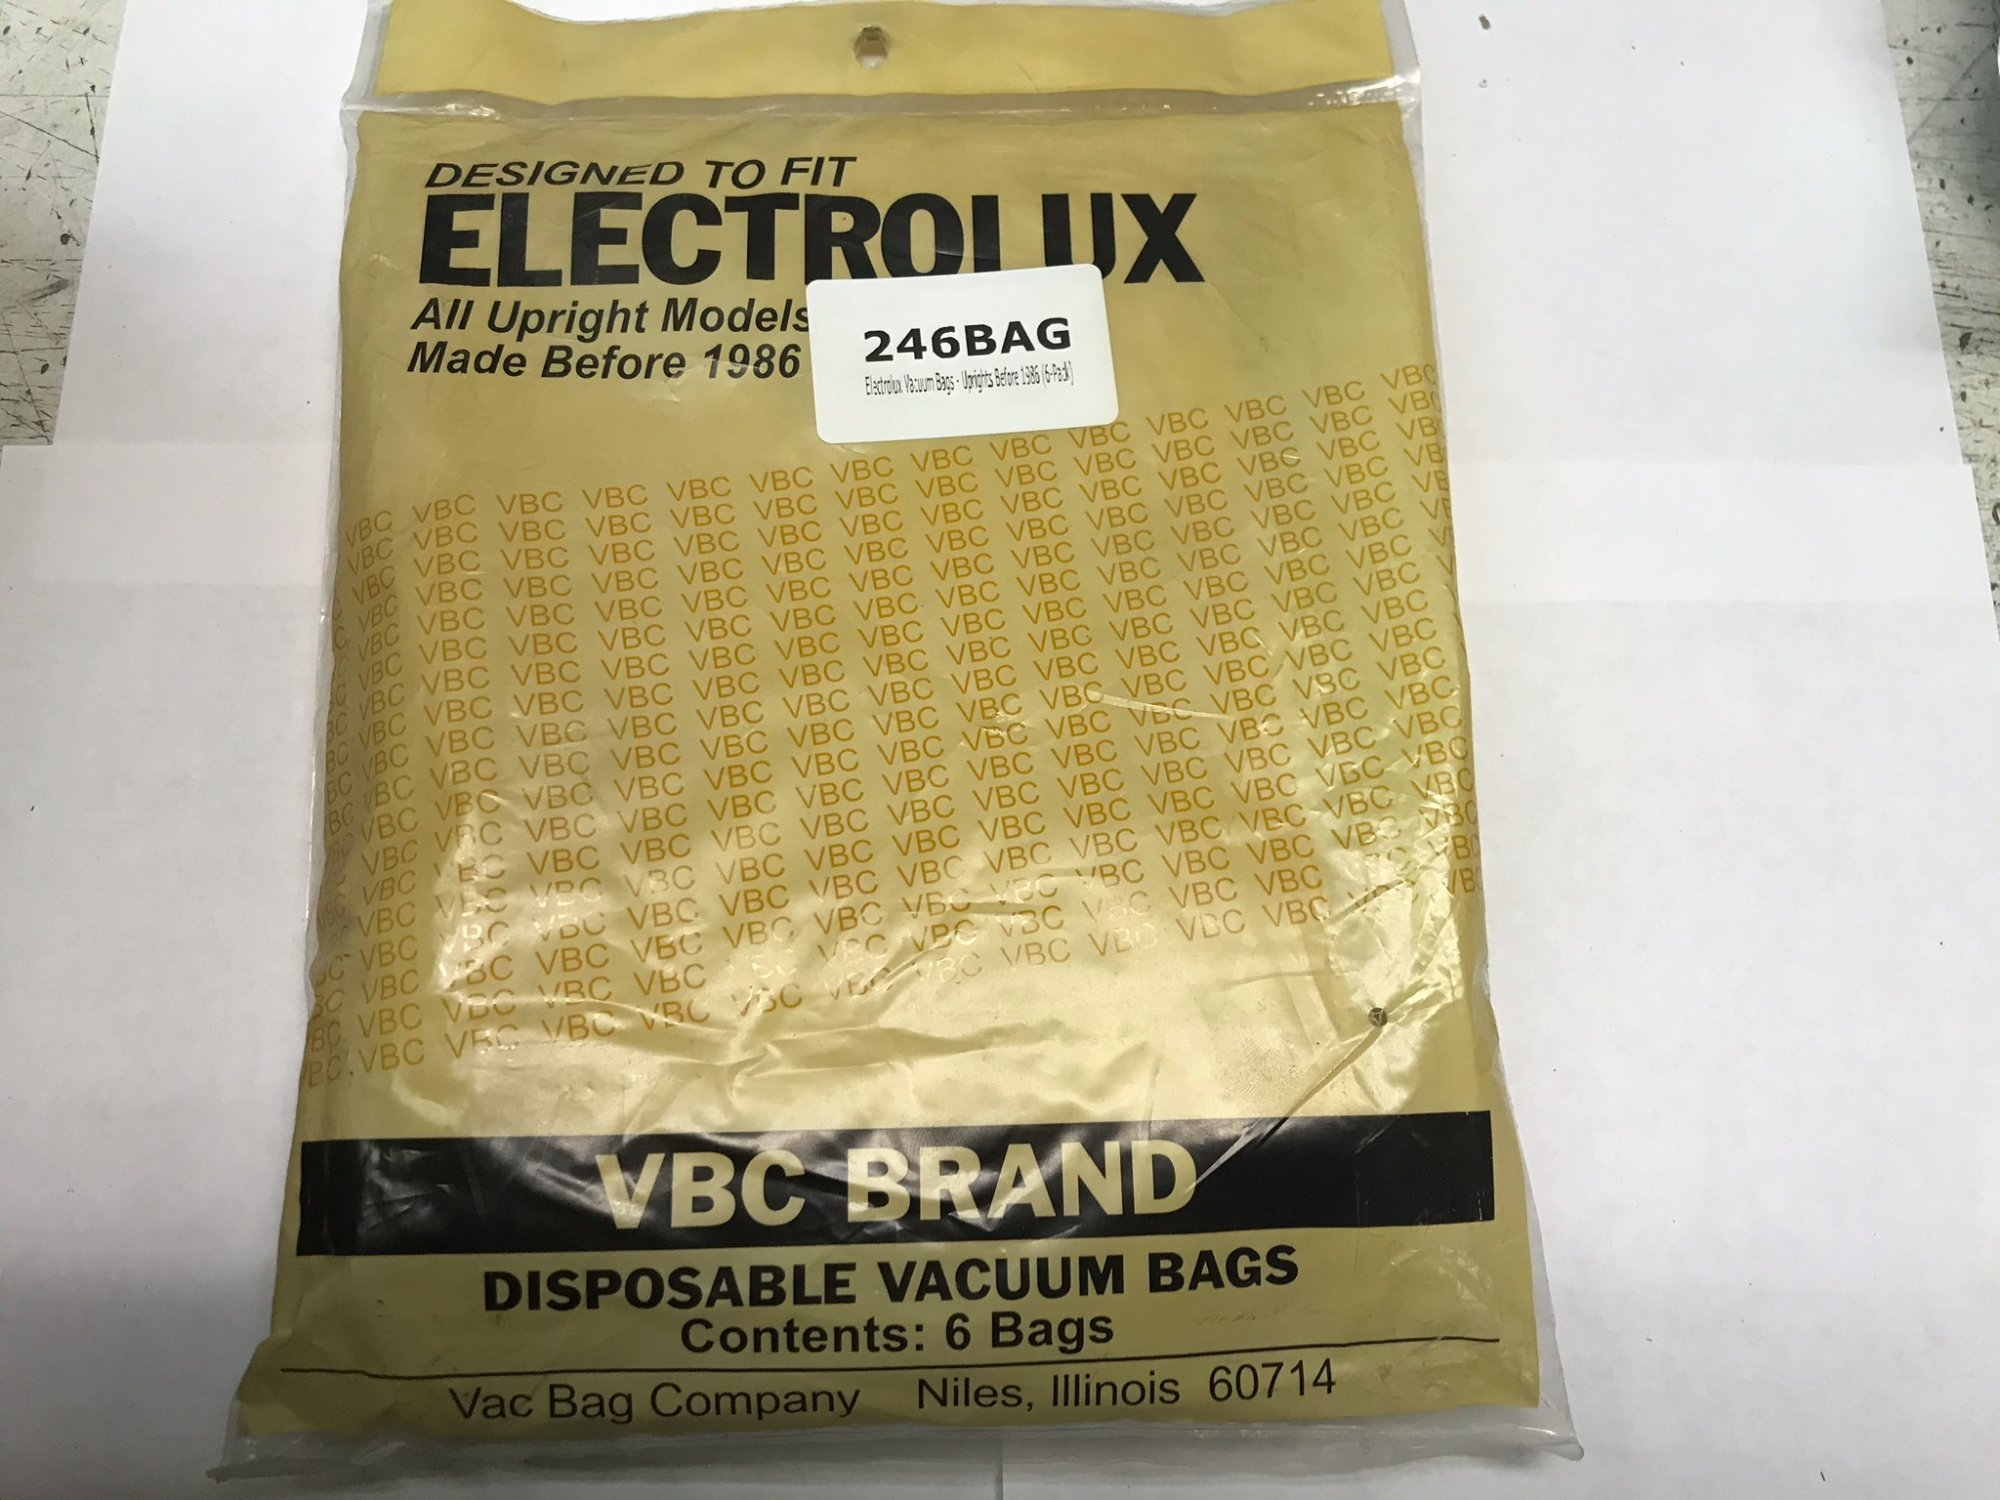 Electrolux Vacuum Bags - Uprights Before 1986 (6-Pack)